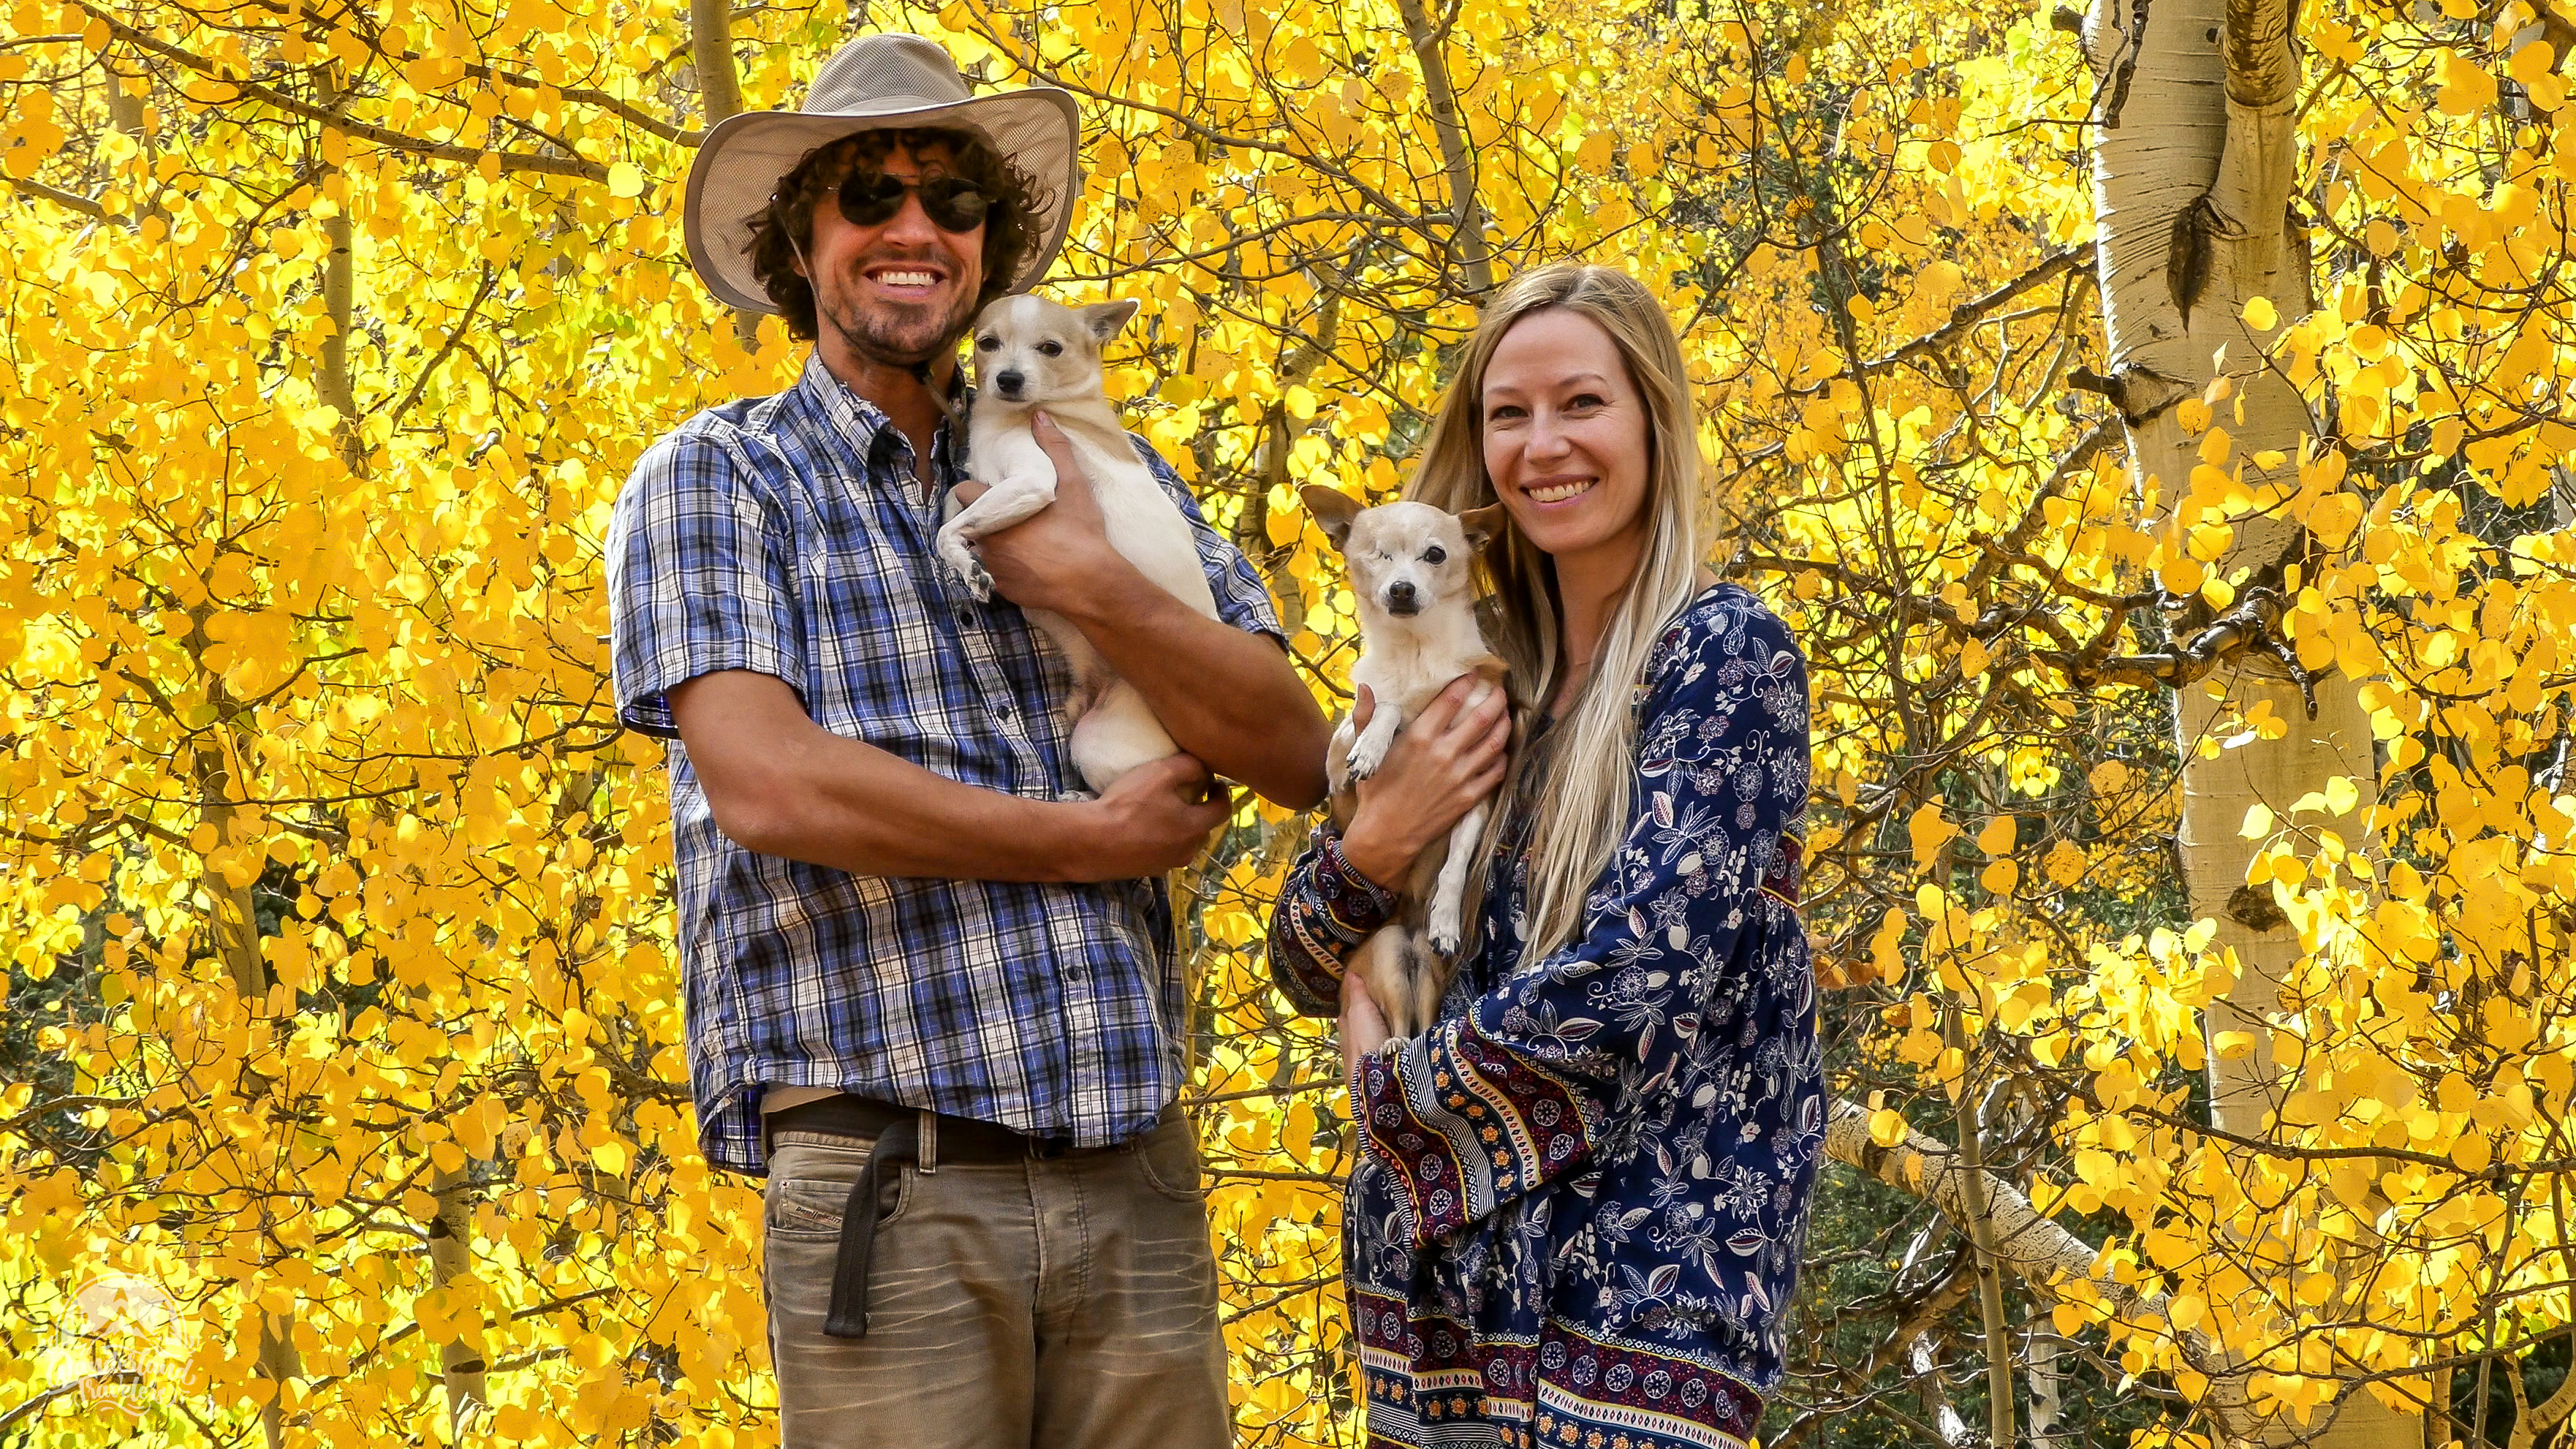 People dogs and yellow aspens